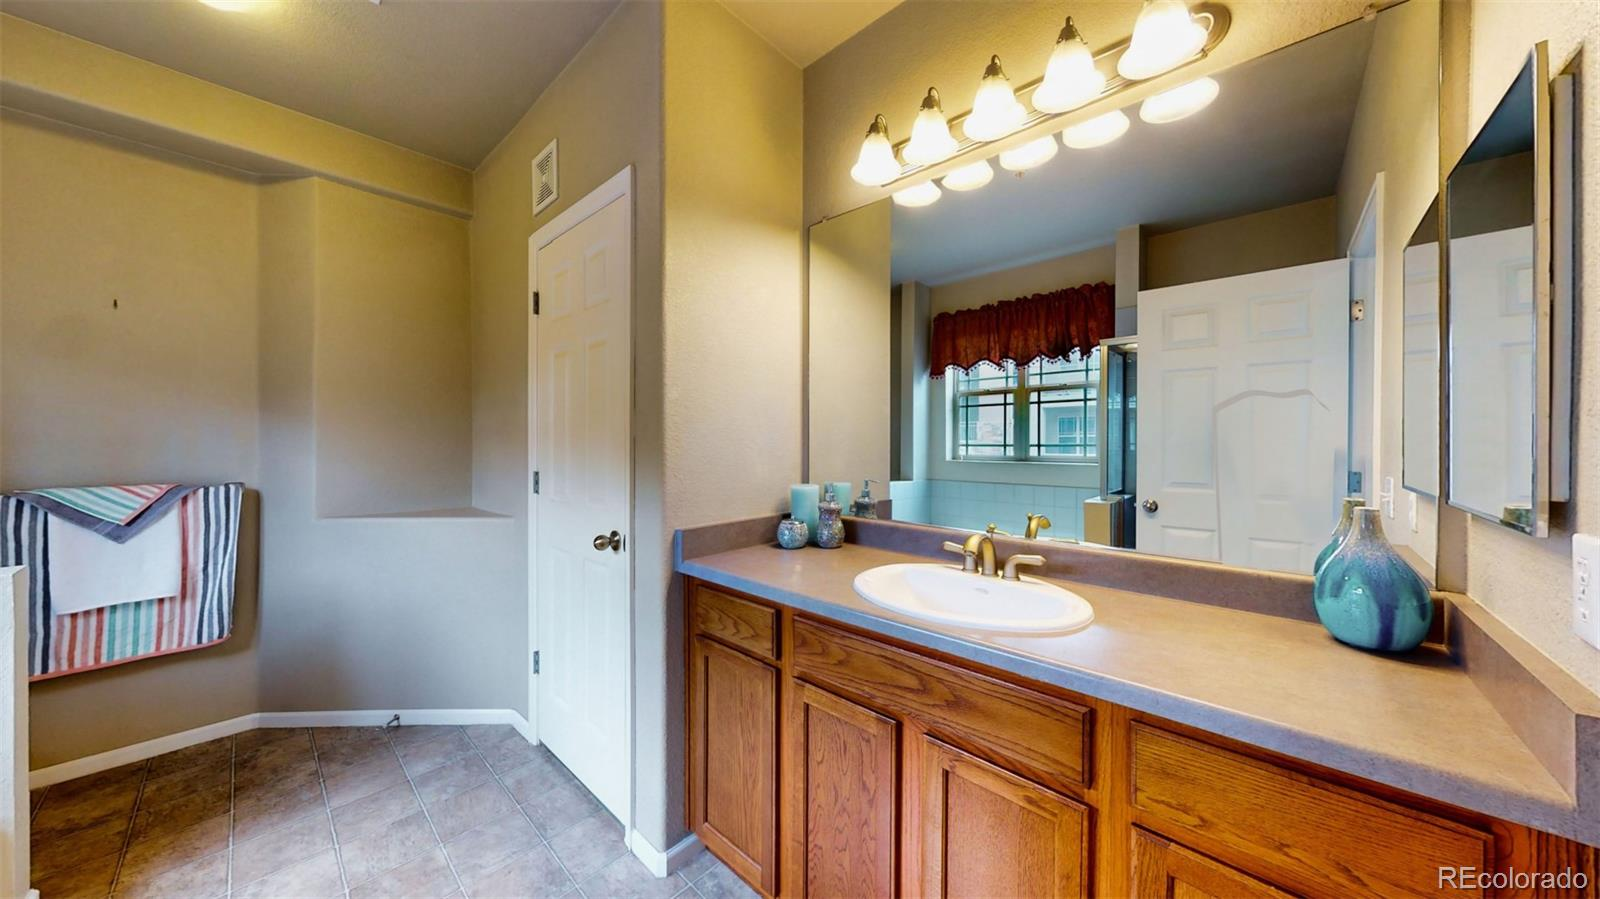 MLS# 3562922 - 12 - 8123 W 51st Place #202, Arvada, CO 80002